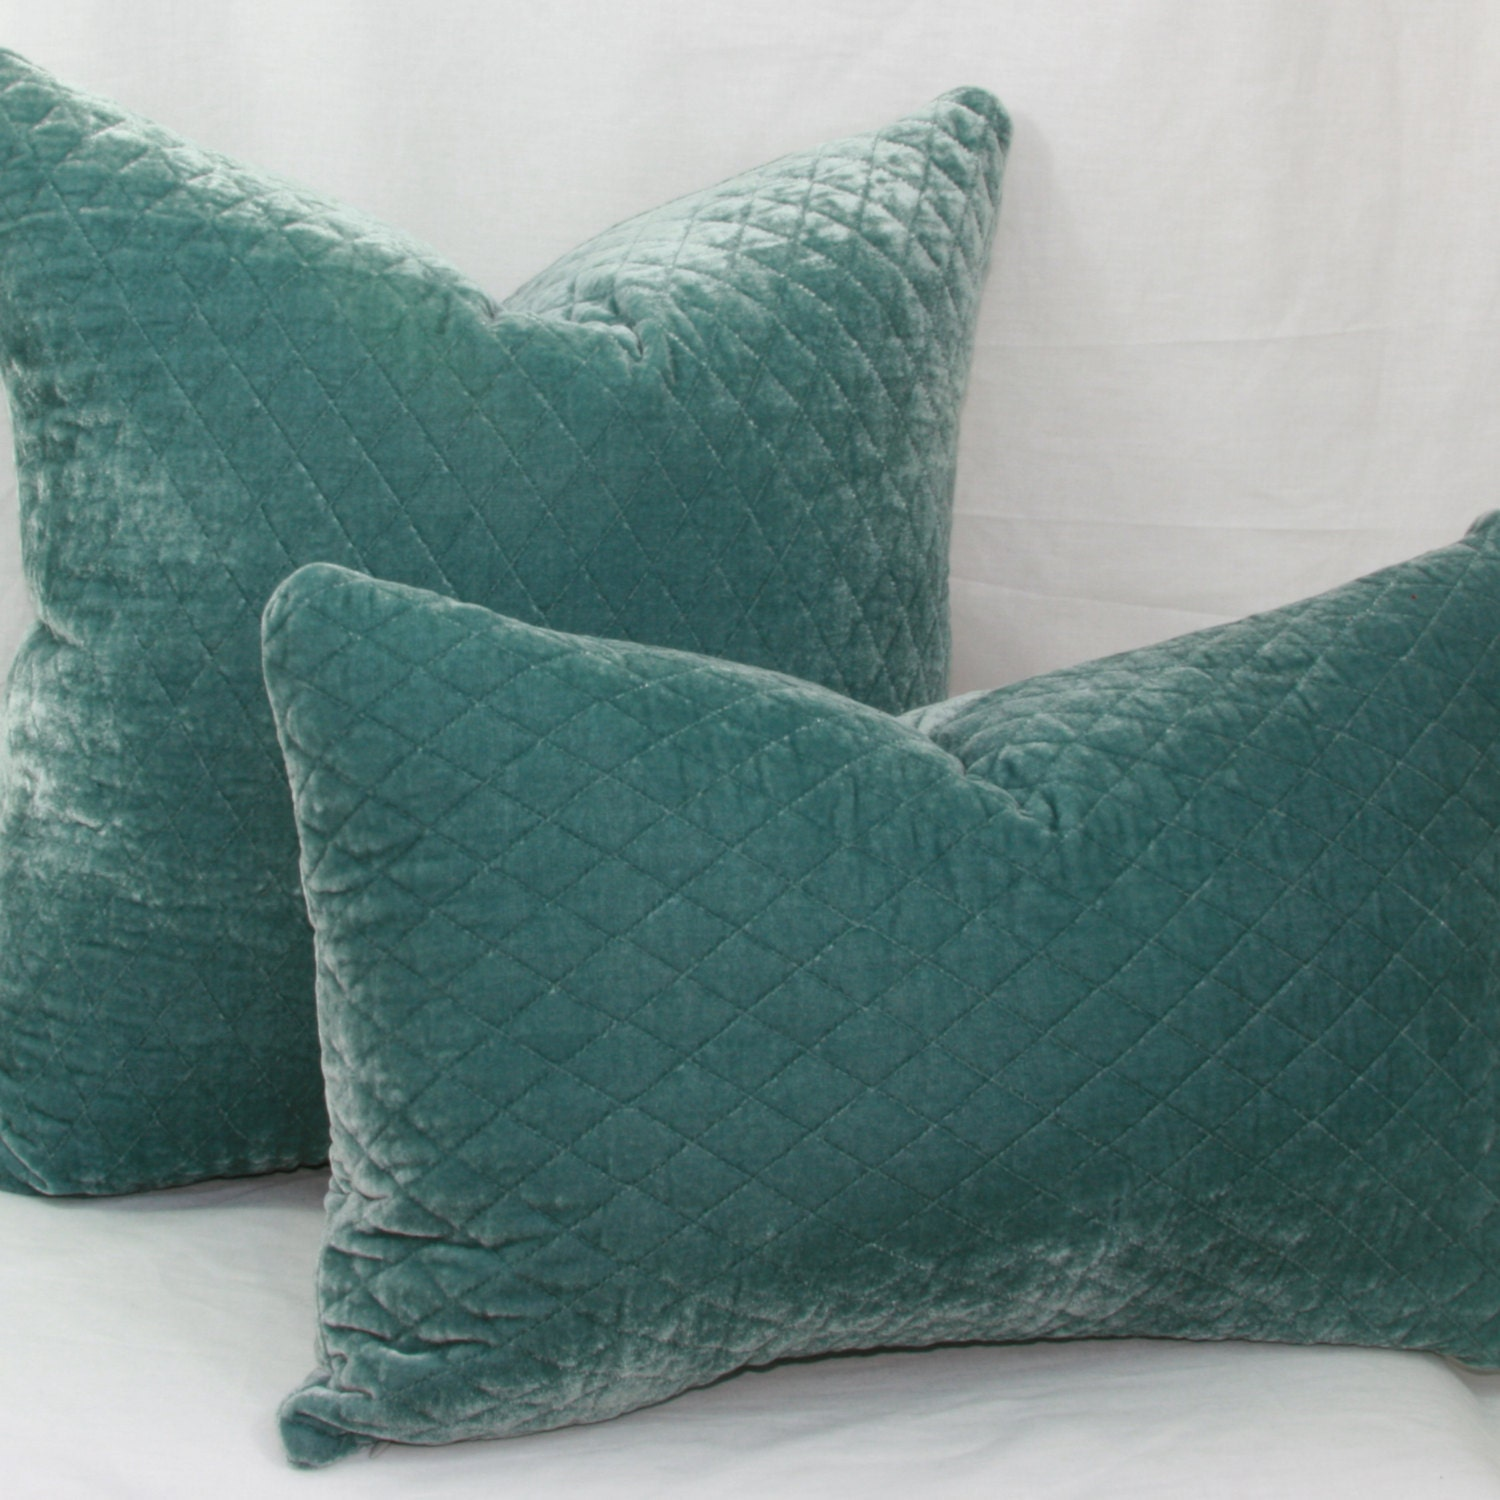 Throw Pillows Velvet : Light teal quilted velvet decorative throw pillow by JoyWorkshoppe